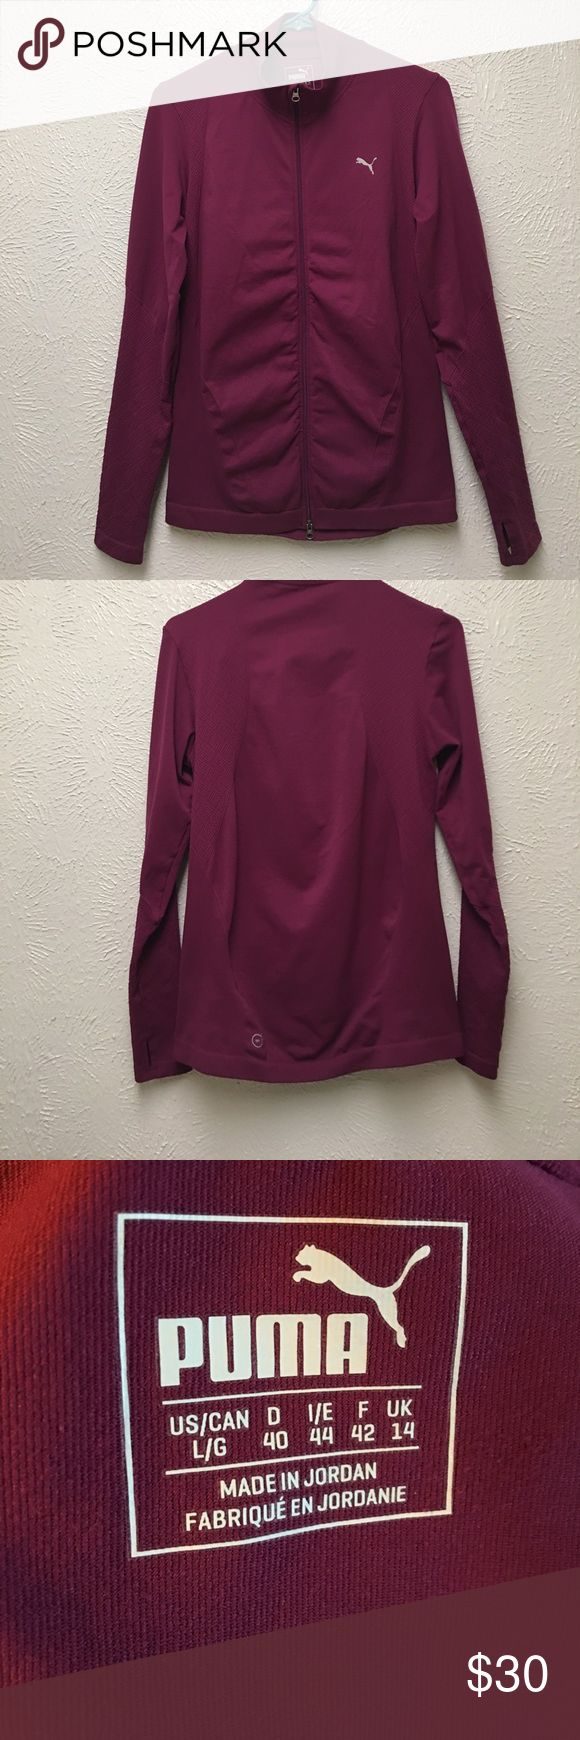 PUMA | Jacket Very nice zip up PUMA Dry Cell Jacket in a cranberry color. Great details in the fabric and it has thumbholes in the sleeves. Very stretchy material with a snug but generous fit. Puma Jackets & Coats